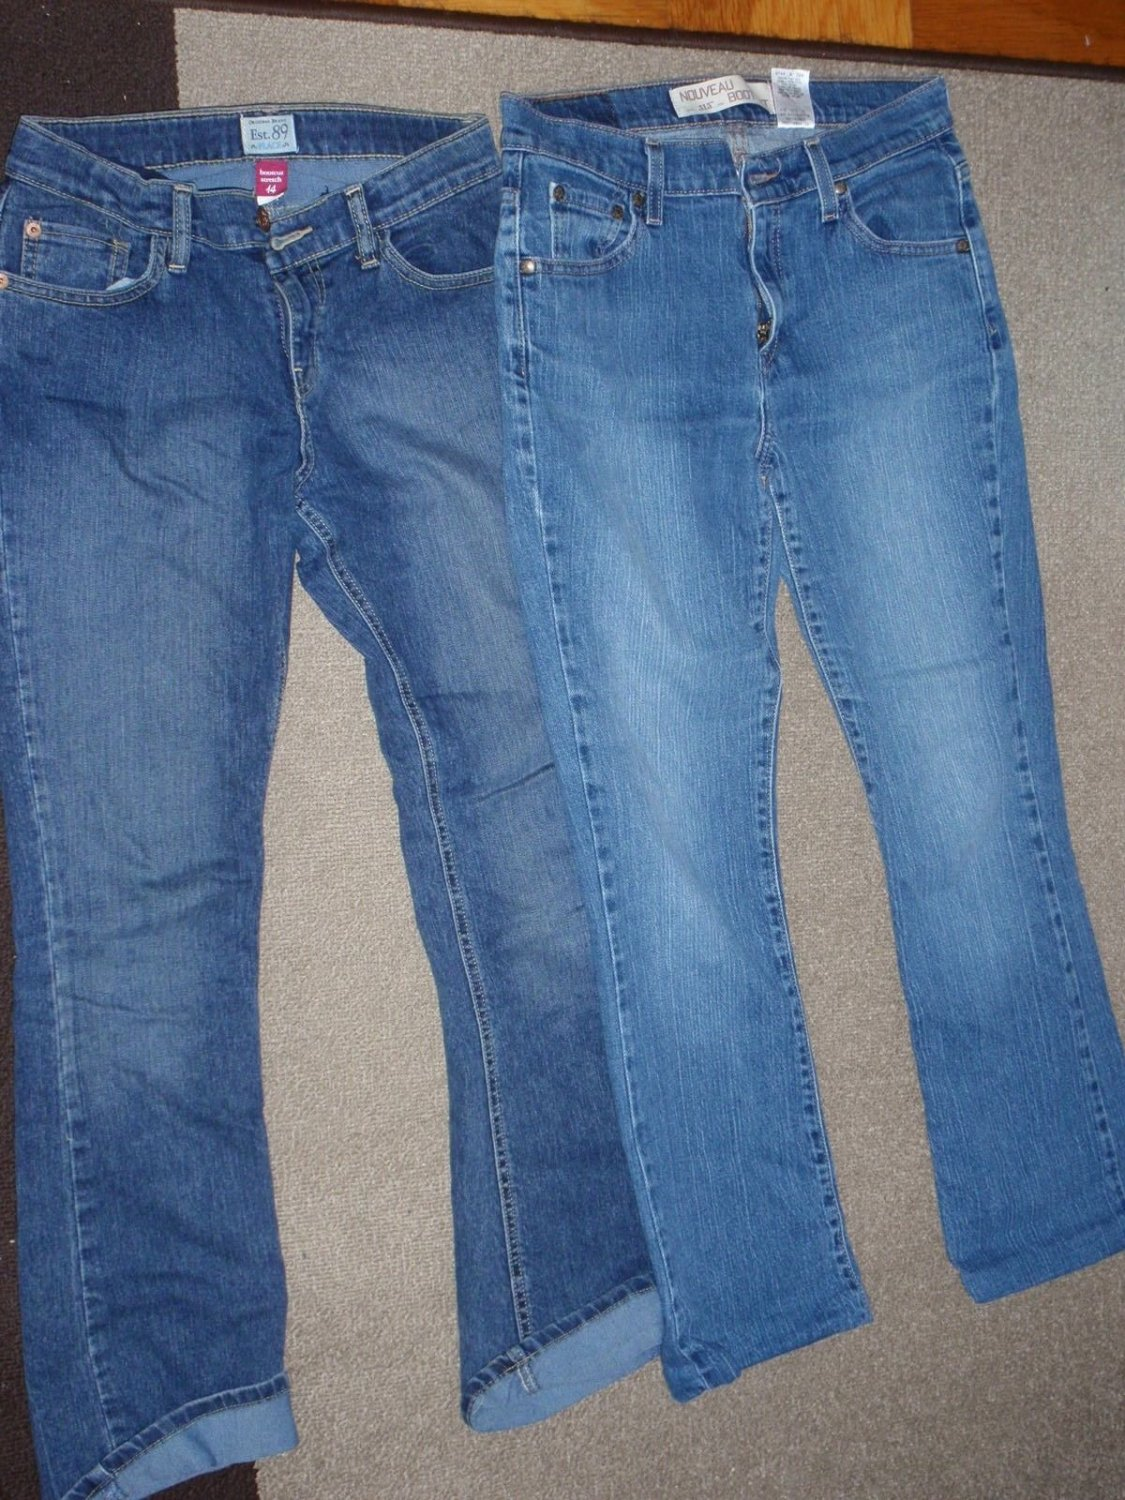 TEENS - BLUE JEANS - LEVI'S Womens 6S / Children's Place Girls 14 BOOT CUT